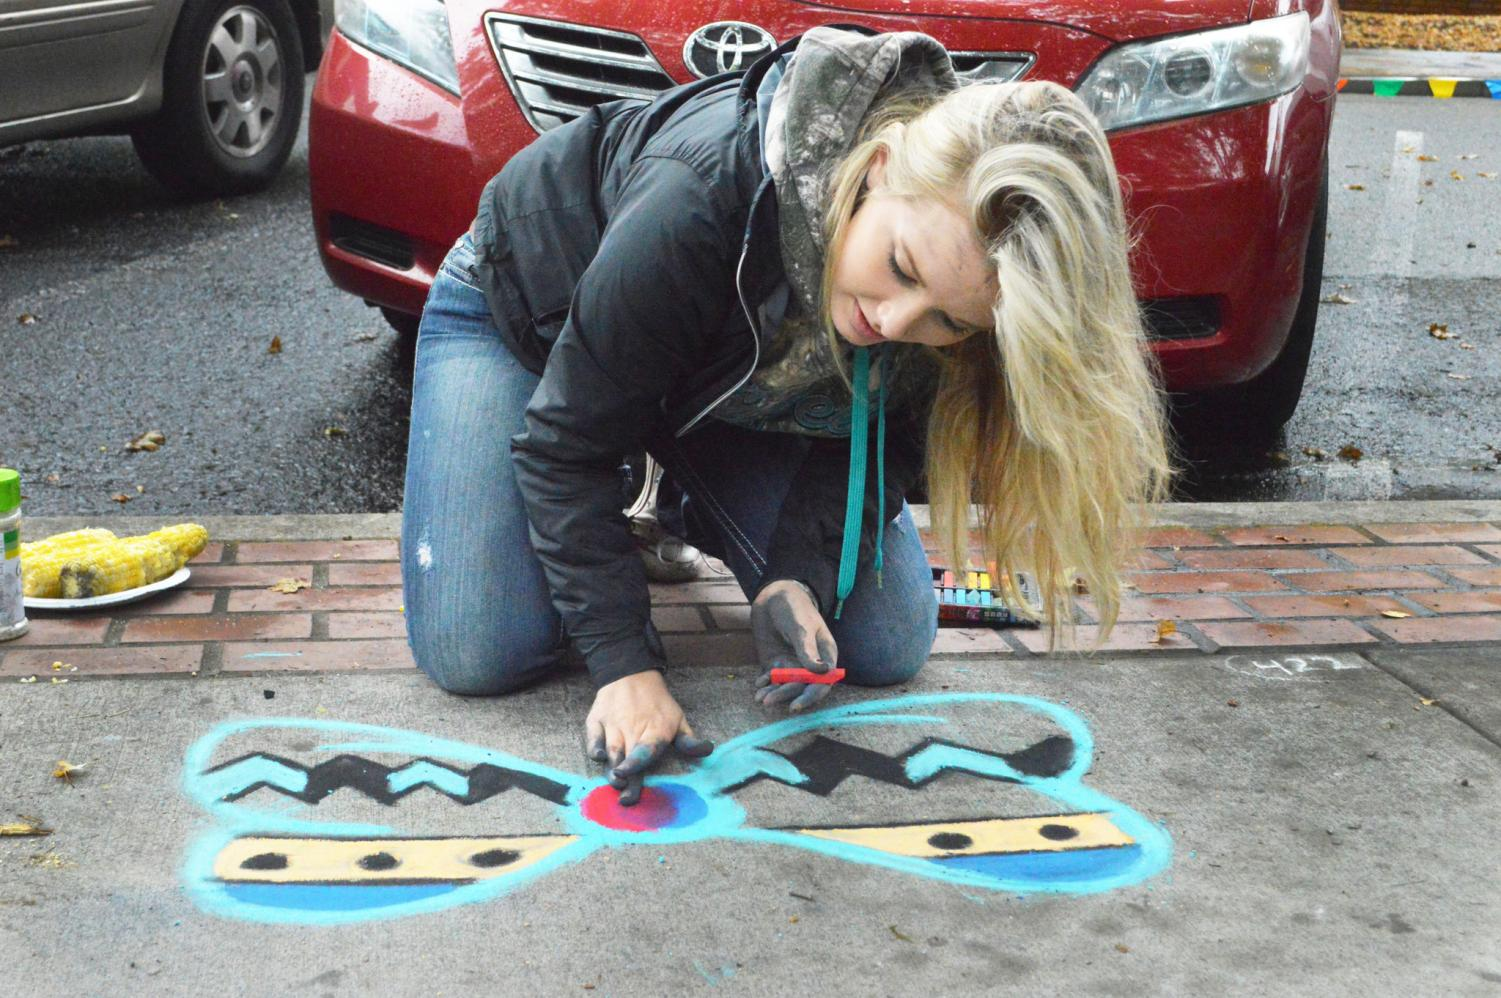 This year's Chalk Art Festival will be held on Sept. 16 from 8 a.m. to 4 p.m. and will provide color to the streets of downtown Forest Grove.